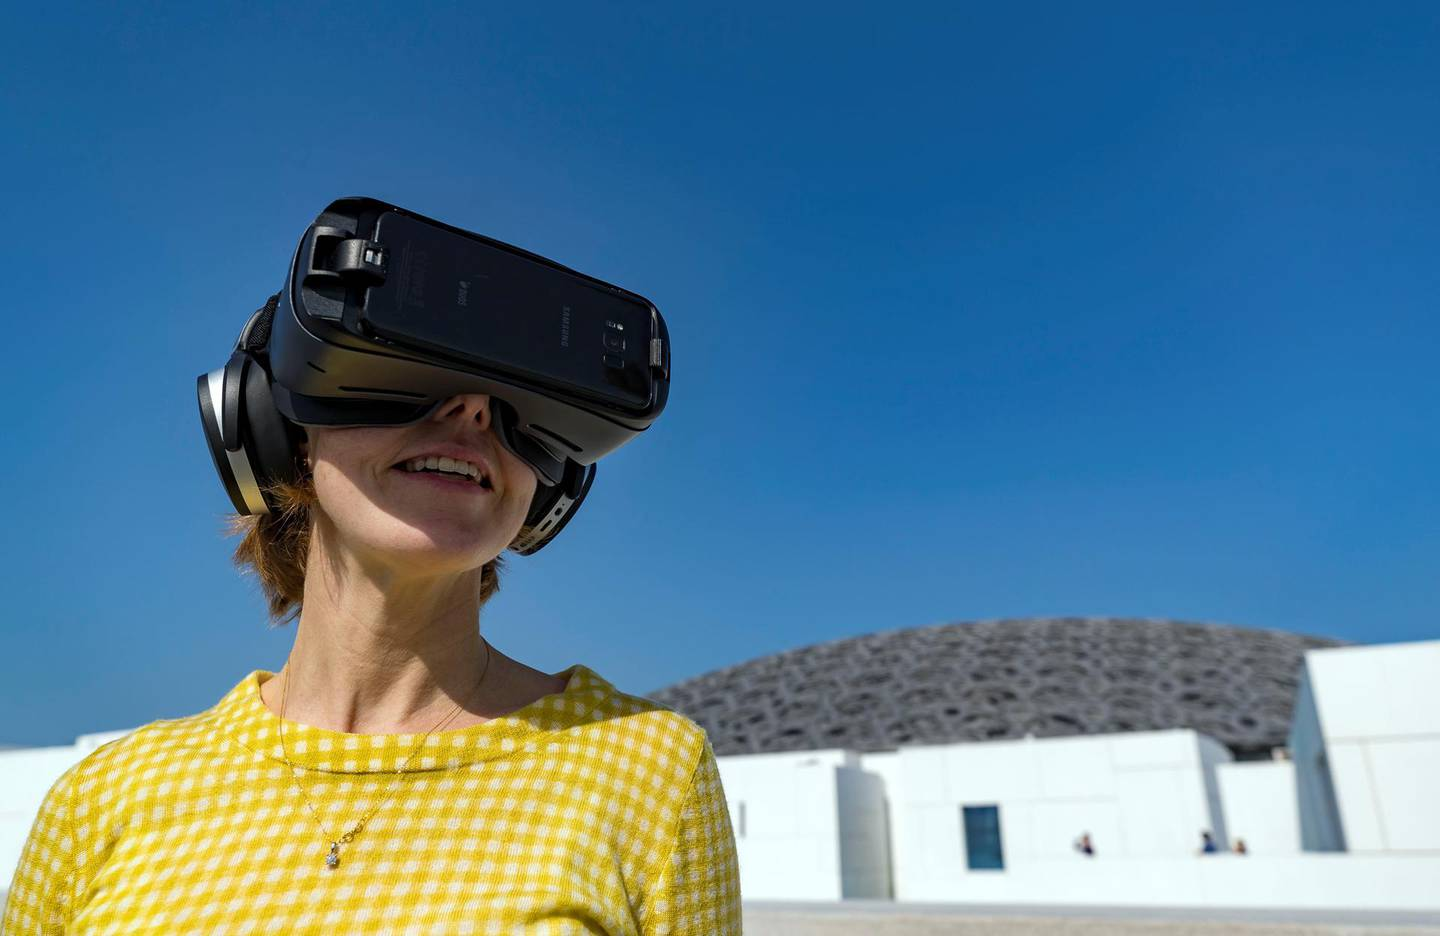 Abu Dhabi, United Arab Emirates - February 15th 2018: Reporter Melissa Gronlund trying on the VR headset at a press conference about the Highway Gallery located along the E11. Thursday, February 15th, 2018. The Louvre, Abu Dhabi. Chris Whiteoak / The National